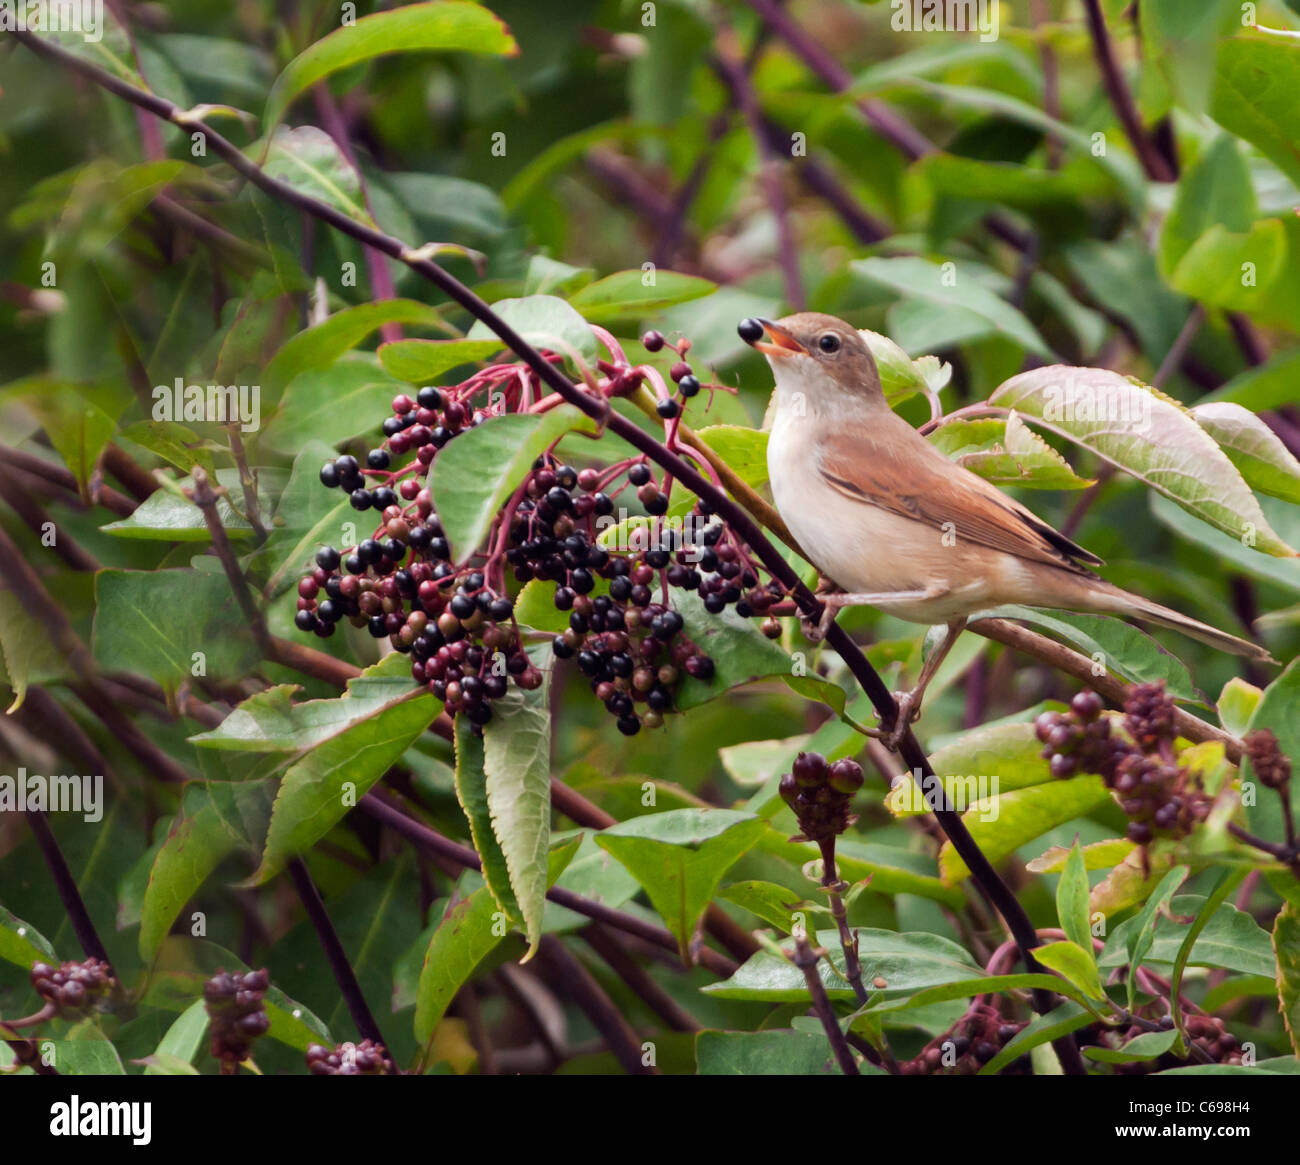 Juvenile Whitethroat (Sylvia communis) feasting on ripened Elderberries - Stock Image